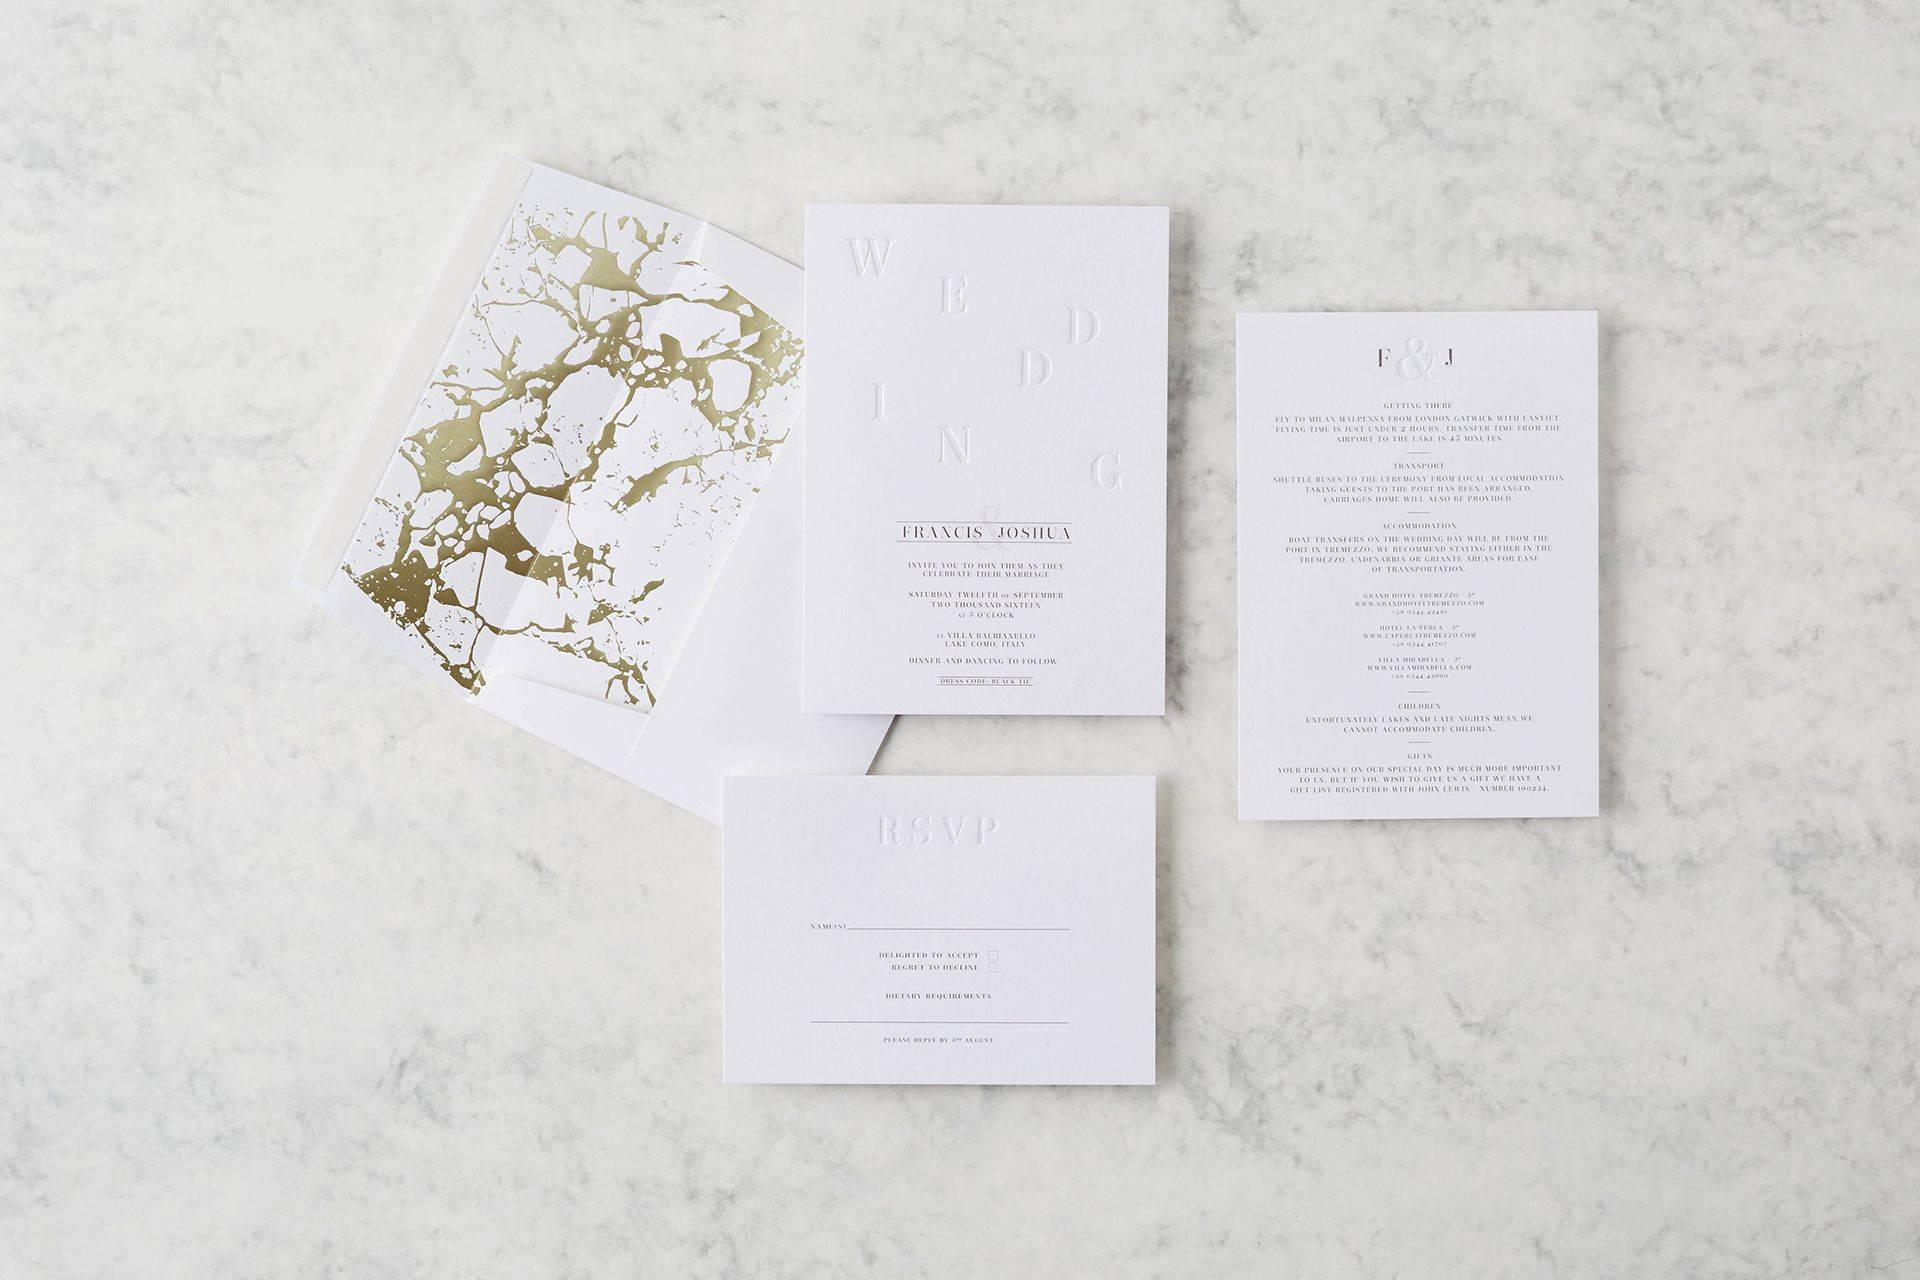 Wedding Stationery 2017: Best Invitations, Save The Date & Thank You ...